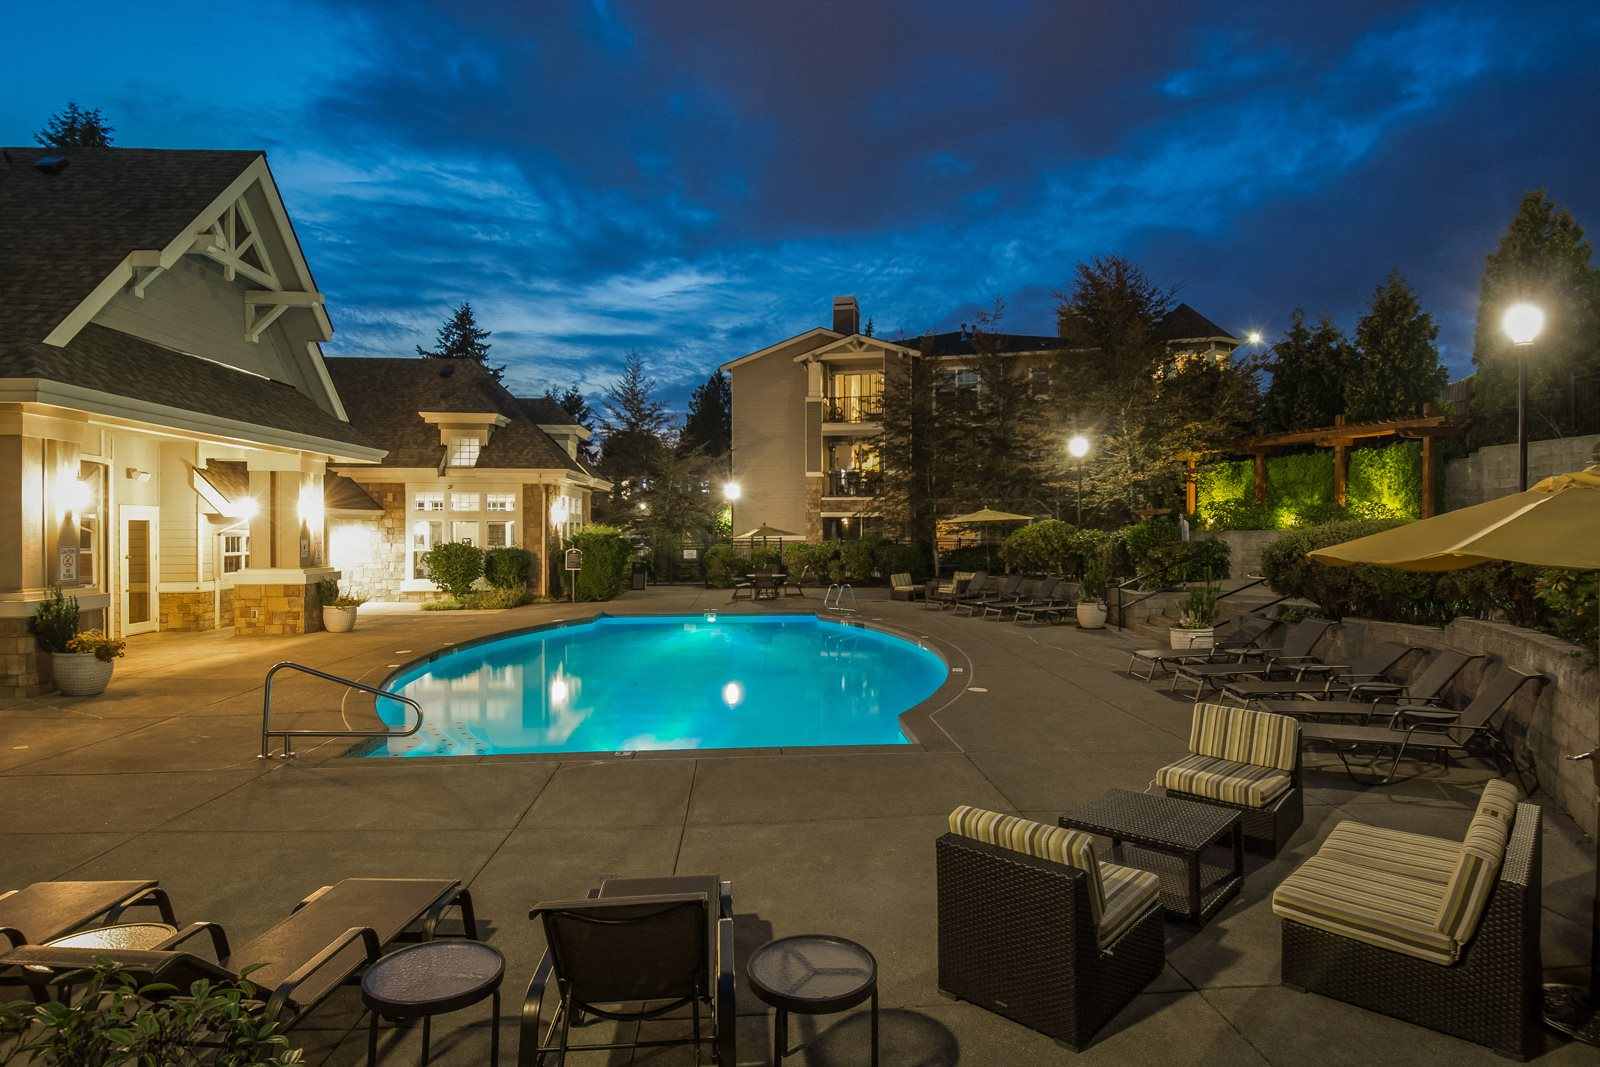 Resort-Style Pool at Reflections by Windsor, 6332 E. Lake Sammamish Parkway NE, Redmond